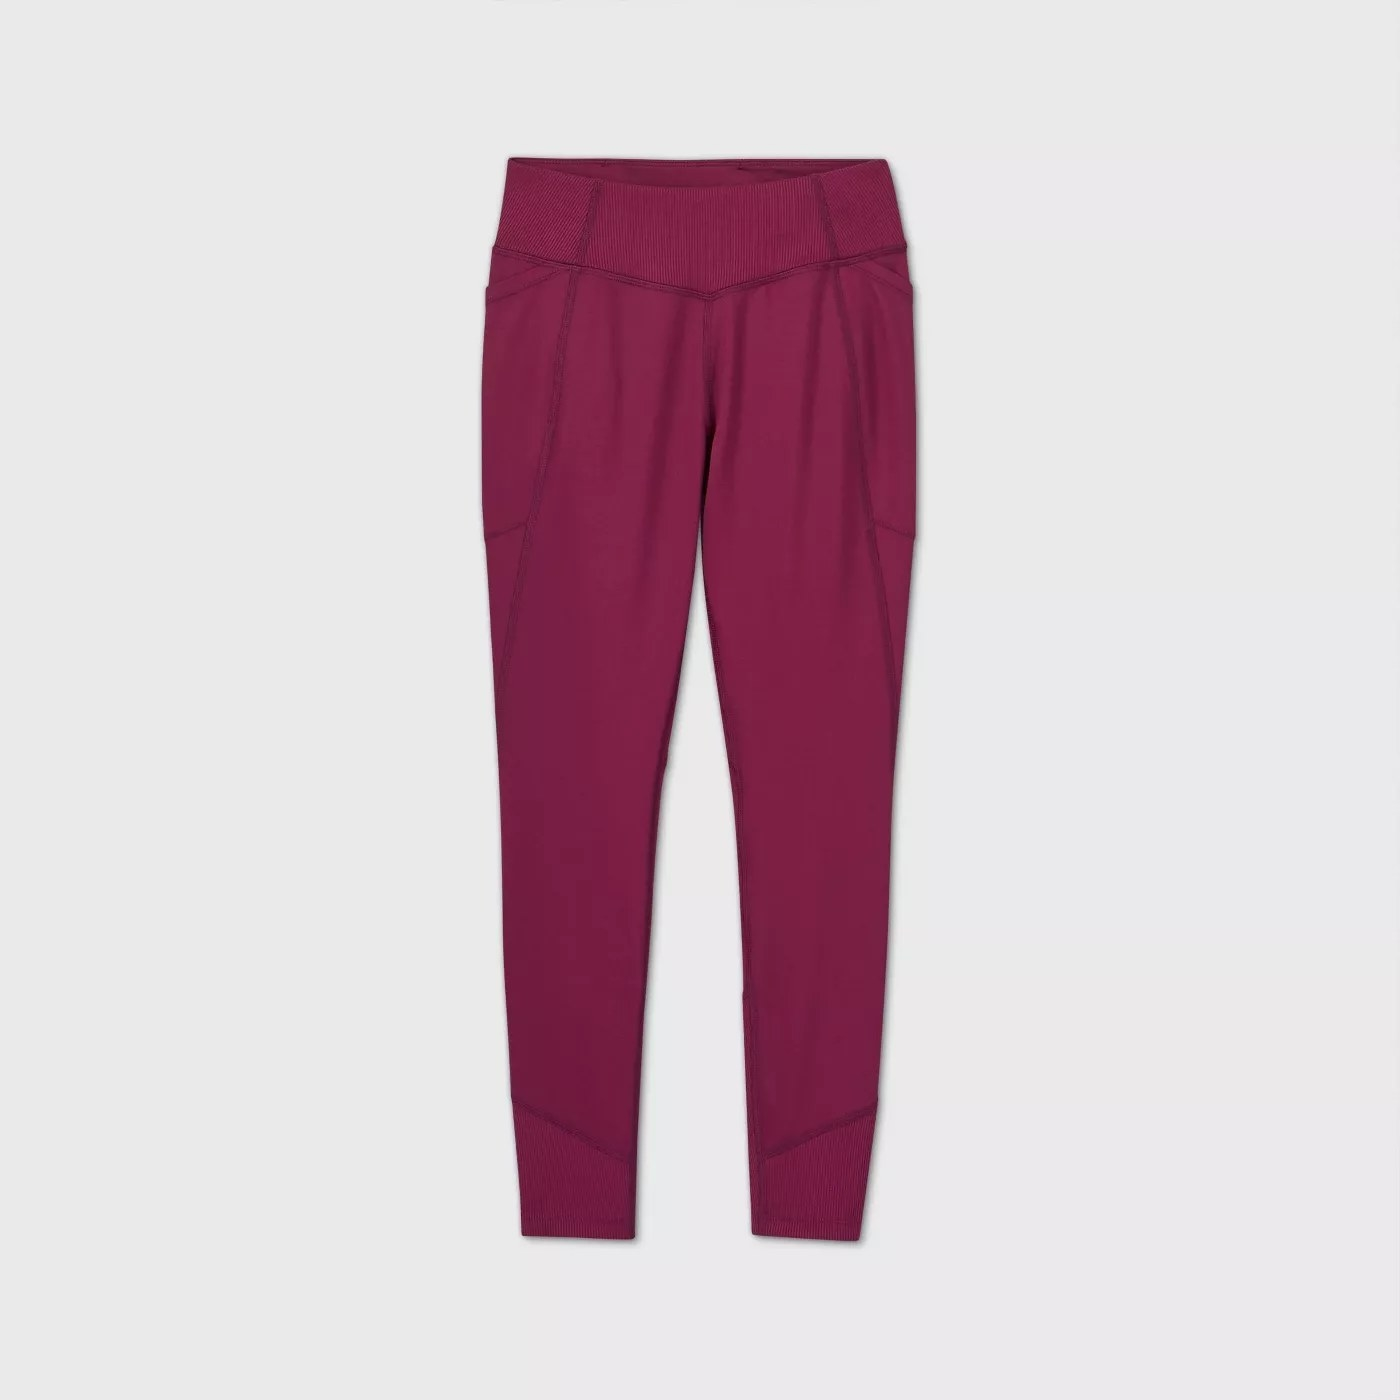 A pair of raspberry purple leggings with pockets